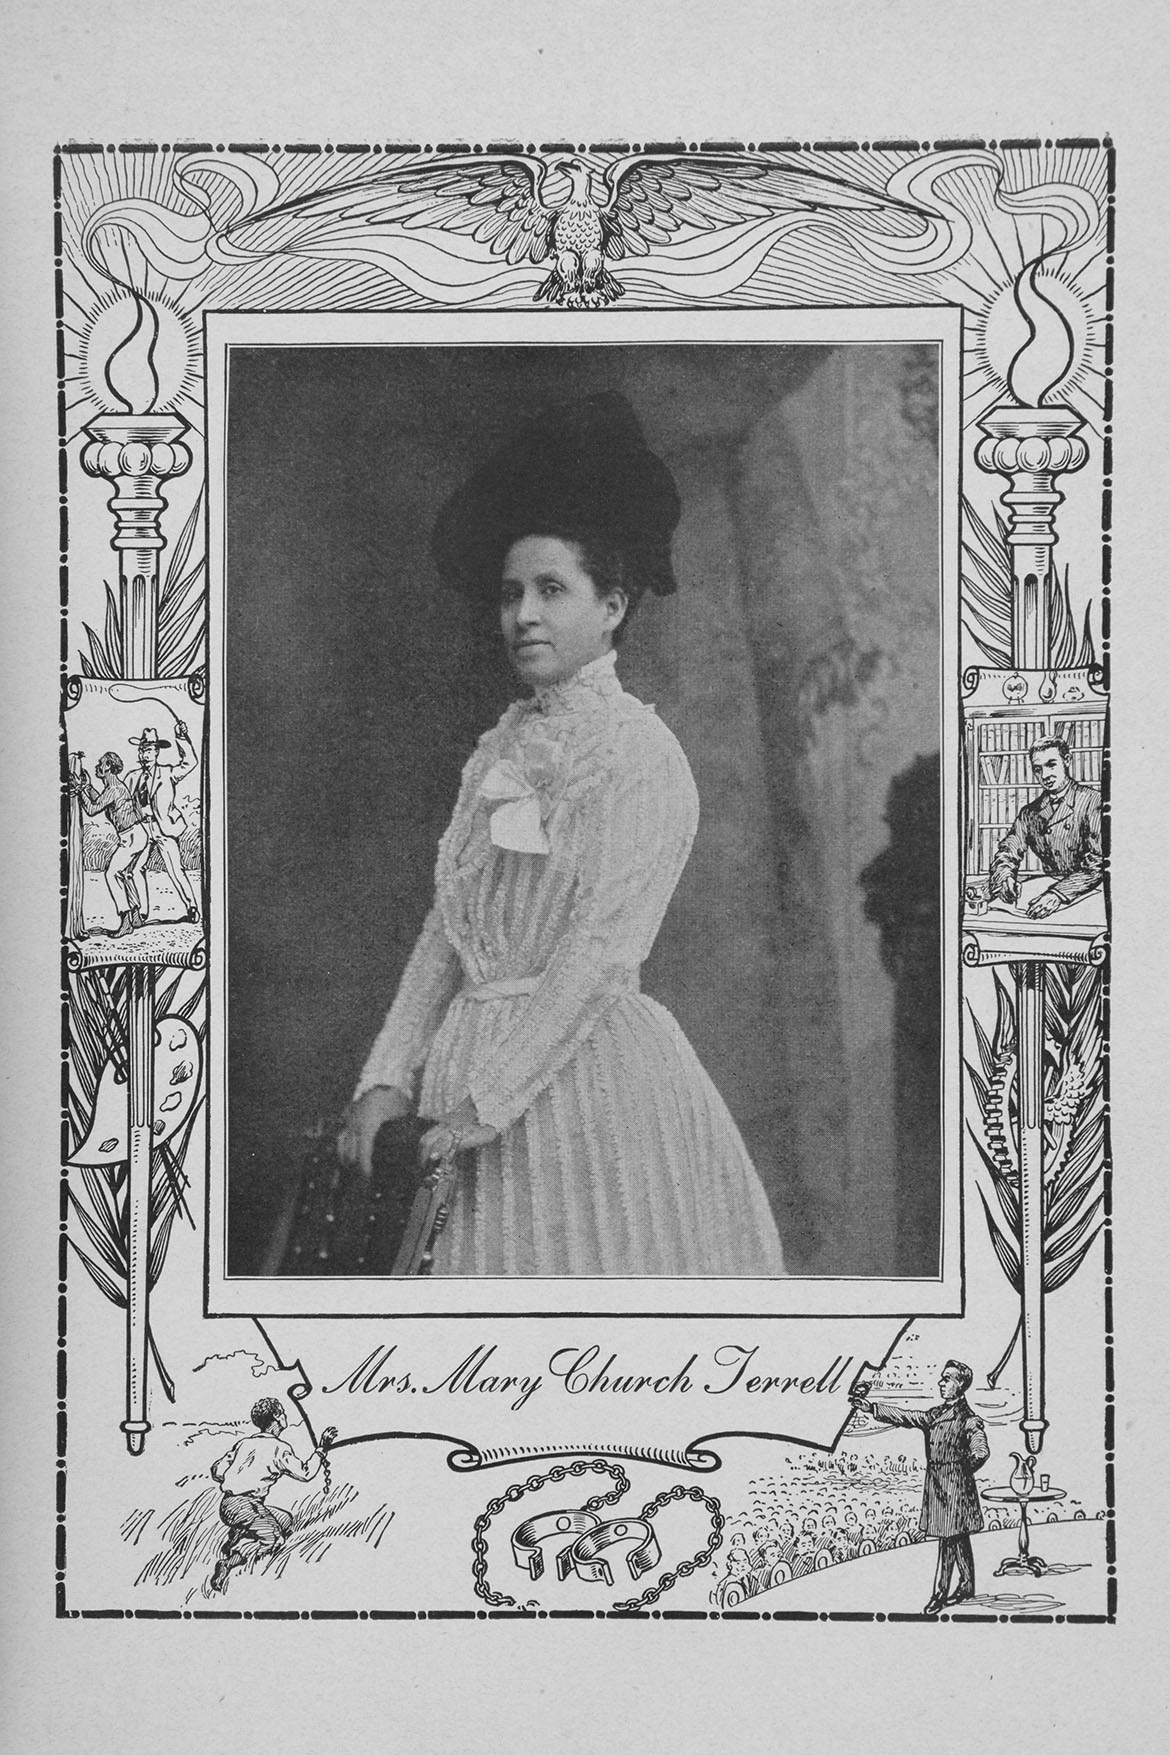 An image of Mary Church Terrell wearing a white dress and black hat. She is standing with her hands resting against a chair.